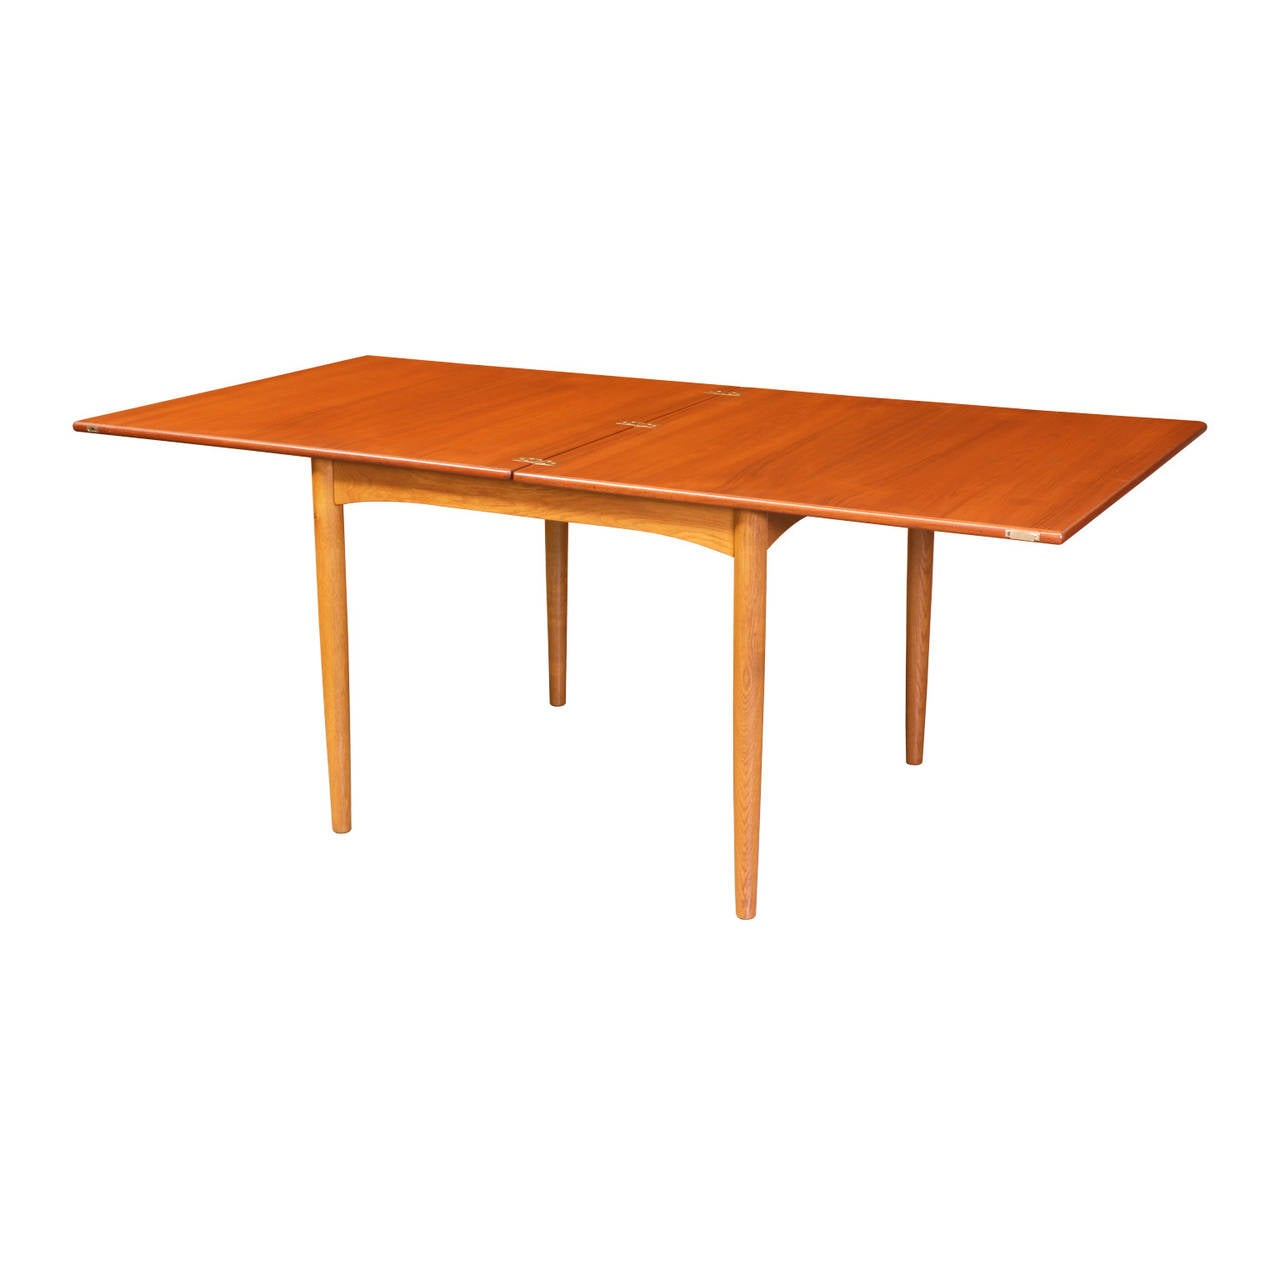 B Rge Mogensen Flip Top Dining Table For Soborg Mobelfabrik For